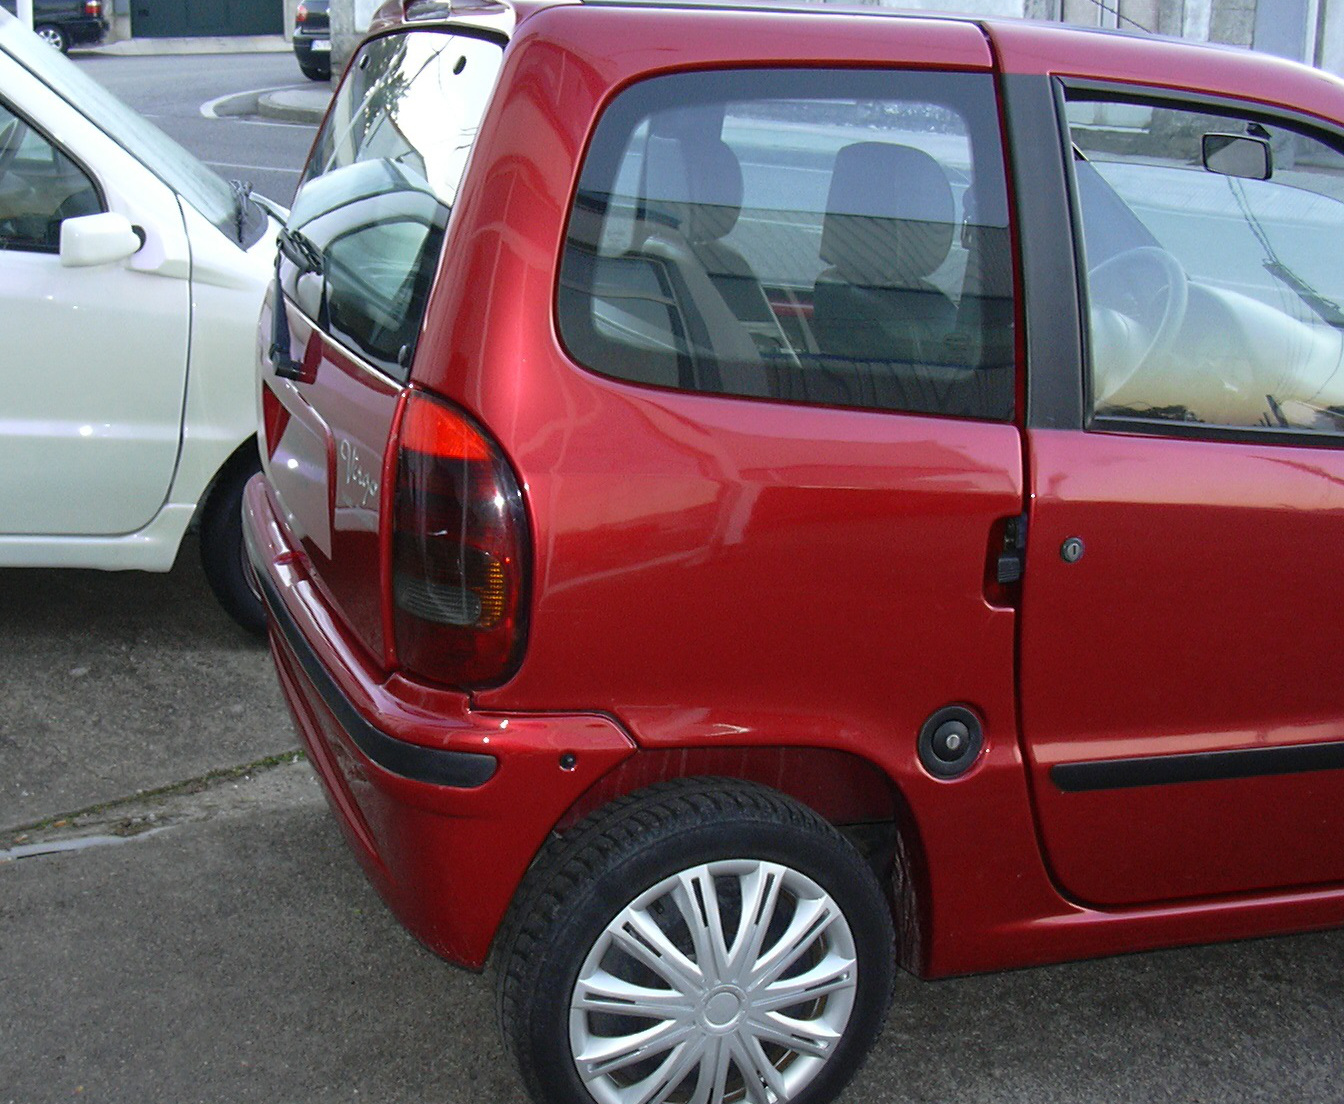 microcar Virgo Rojo (1)